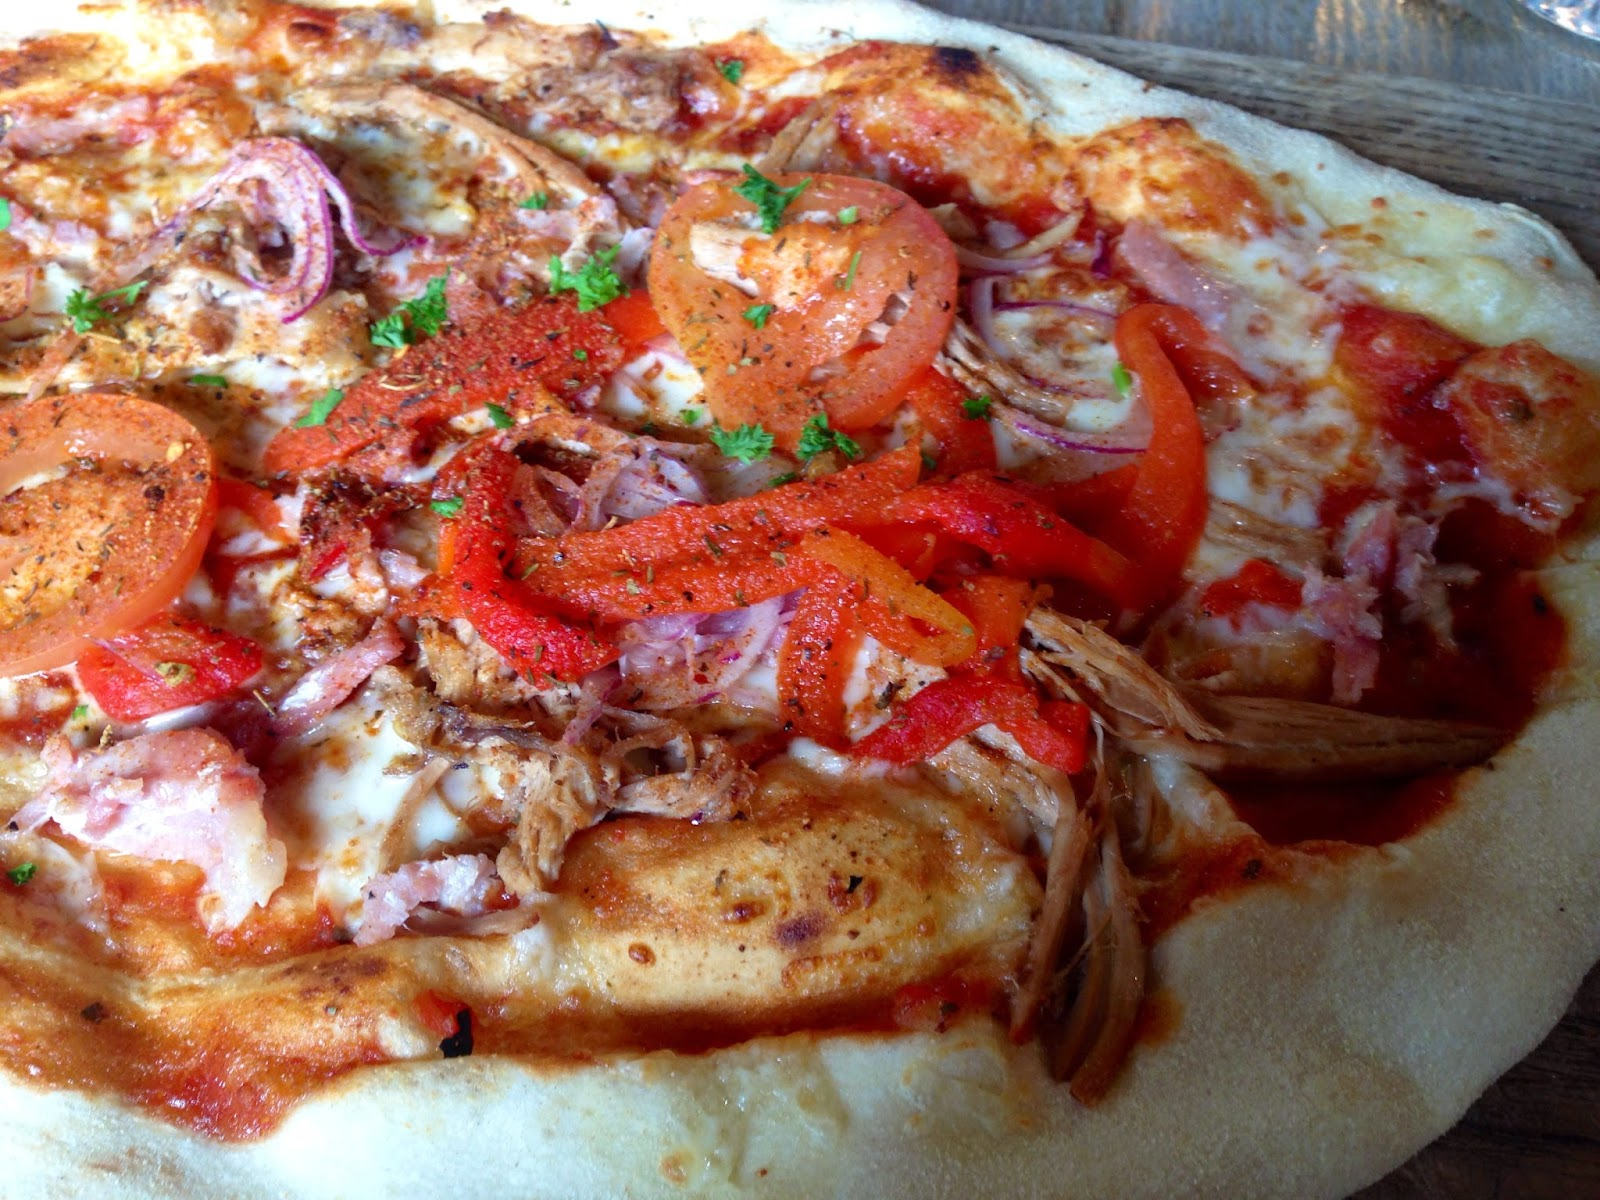 The Boston pizza at The Bulls Head, Repton, pulled pork pizza, gingey bites